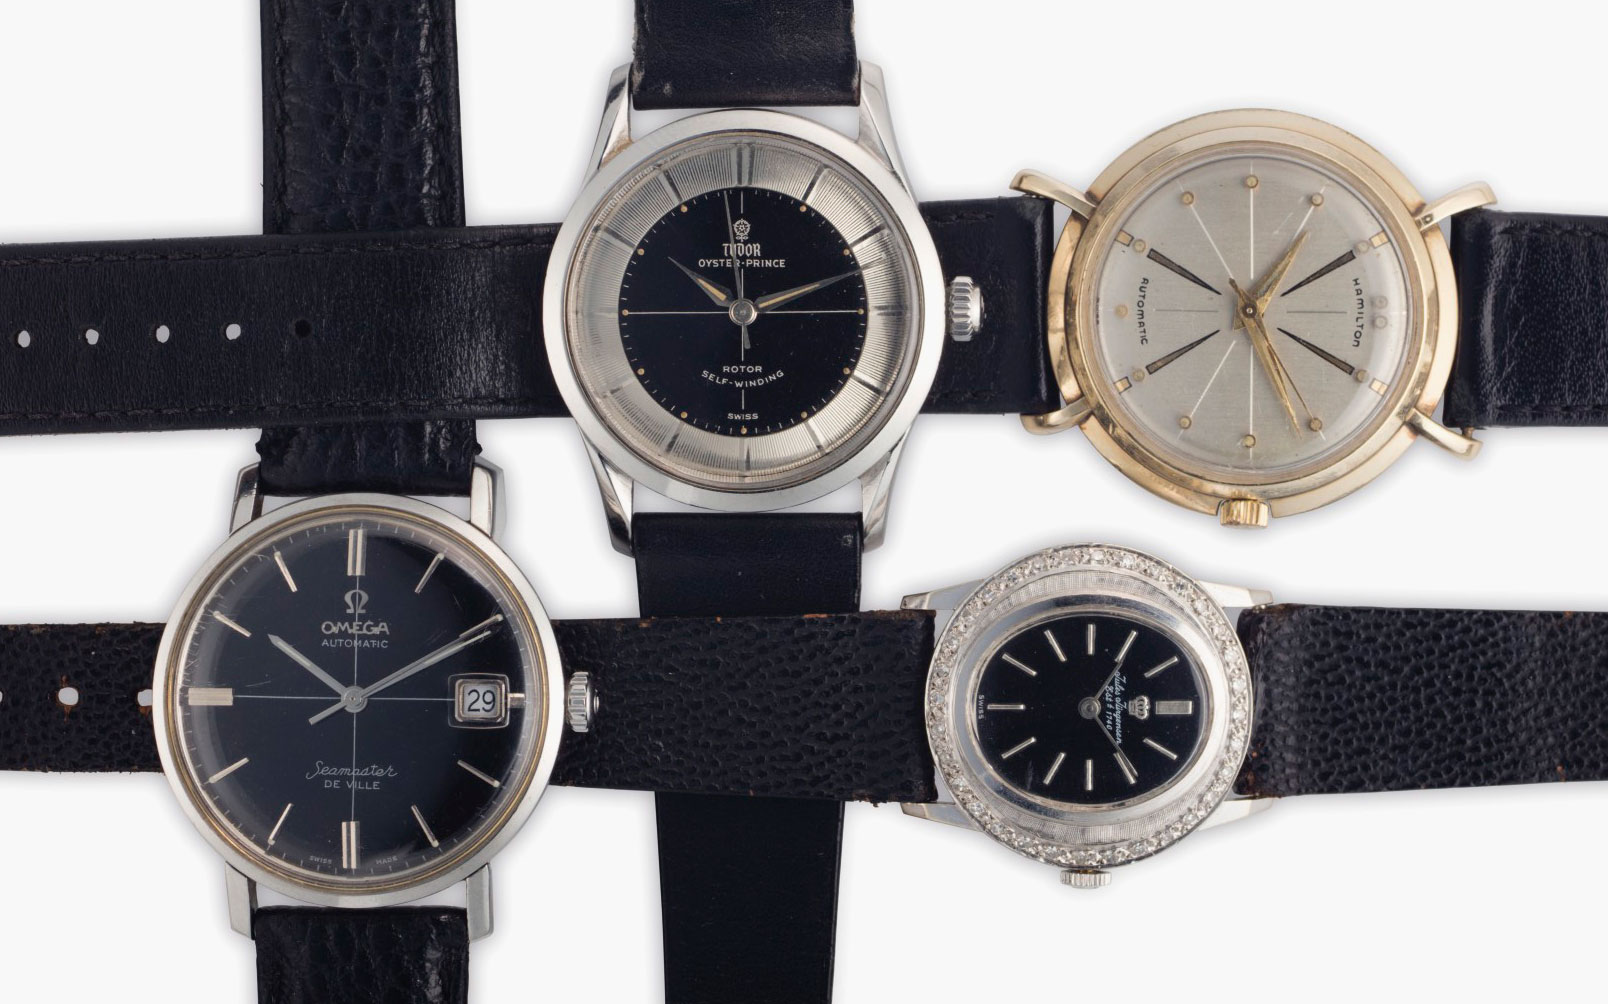 Vintage Watches In Mad Men